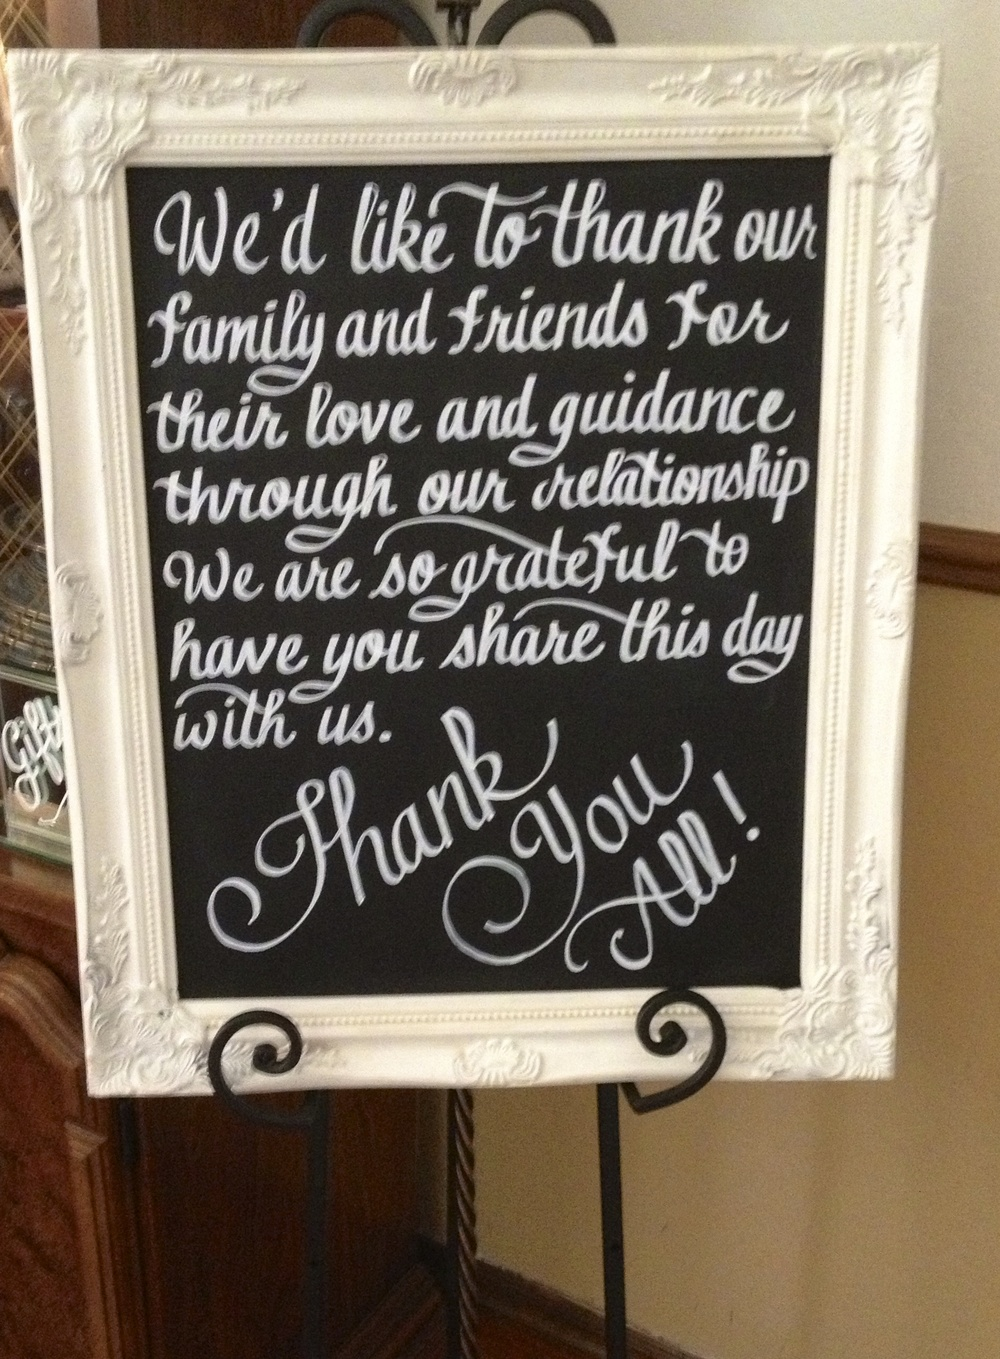 Darlene Anderson Chalkboard-Thank You To Friends and Family.jpg